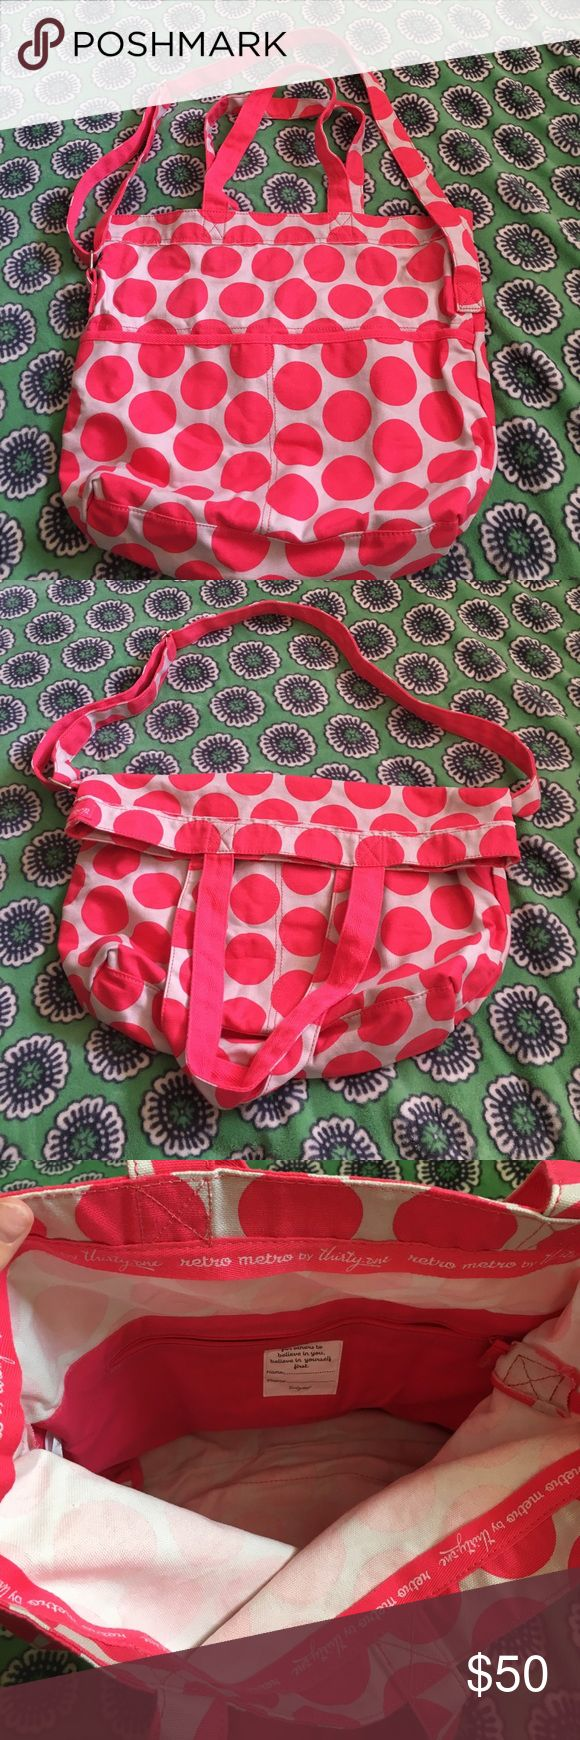 """NEW Thirty one Fold Over Retro Metro Bag Brand new! Never used! Kept inside the plastic bag it came in. Cotton fabric, can wear as a crossbody or a shoulder bag. 2 exterior pockets, 1 interior pocket. Approx 16""""h x 19""""L at top x 14"""" L at bottom x 4.5""""D color is Coral Mod Dots thirty one gifts Bags Totes"""